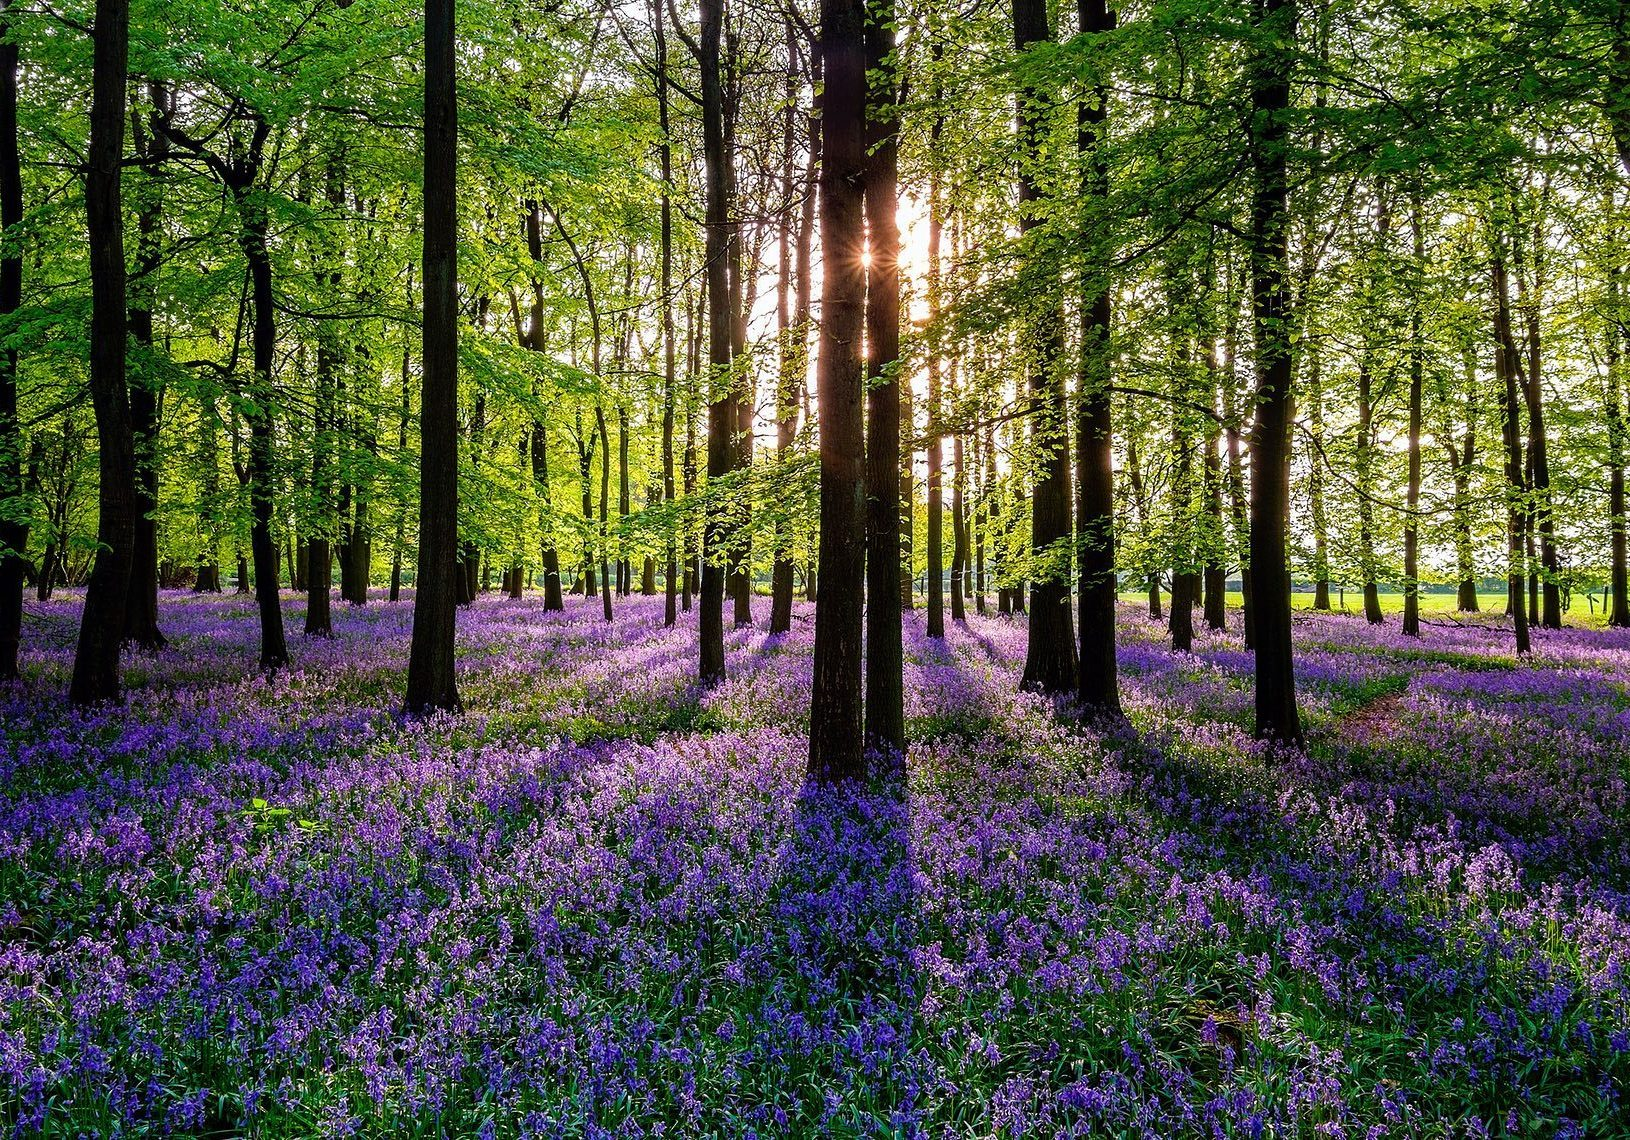 Spring-Flowers-Five-The-Horseshoes-Oxfordshire-UK-The-Guardian-